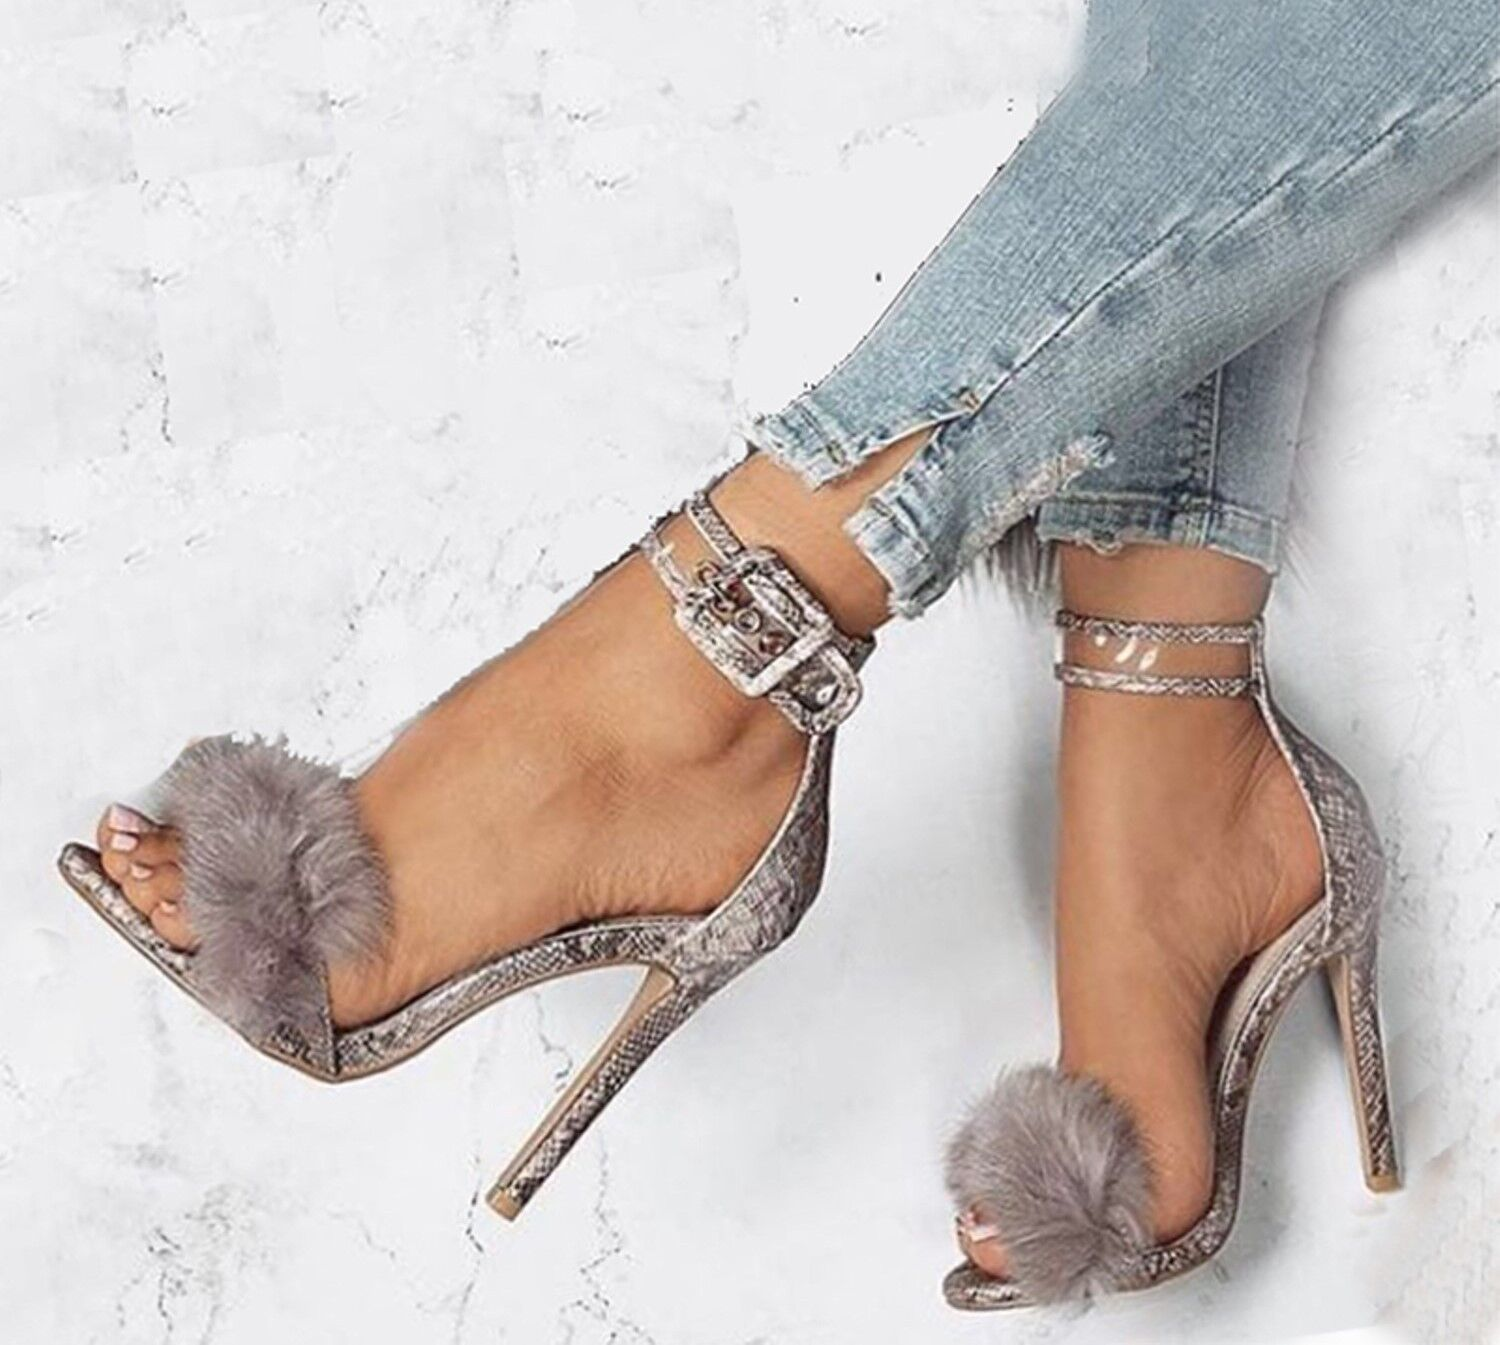 490d31dd965 Women Slim High Heels Faux Fur Sandals Buckle Peep Toe Party Summer Shoes  Prom